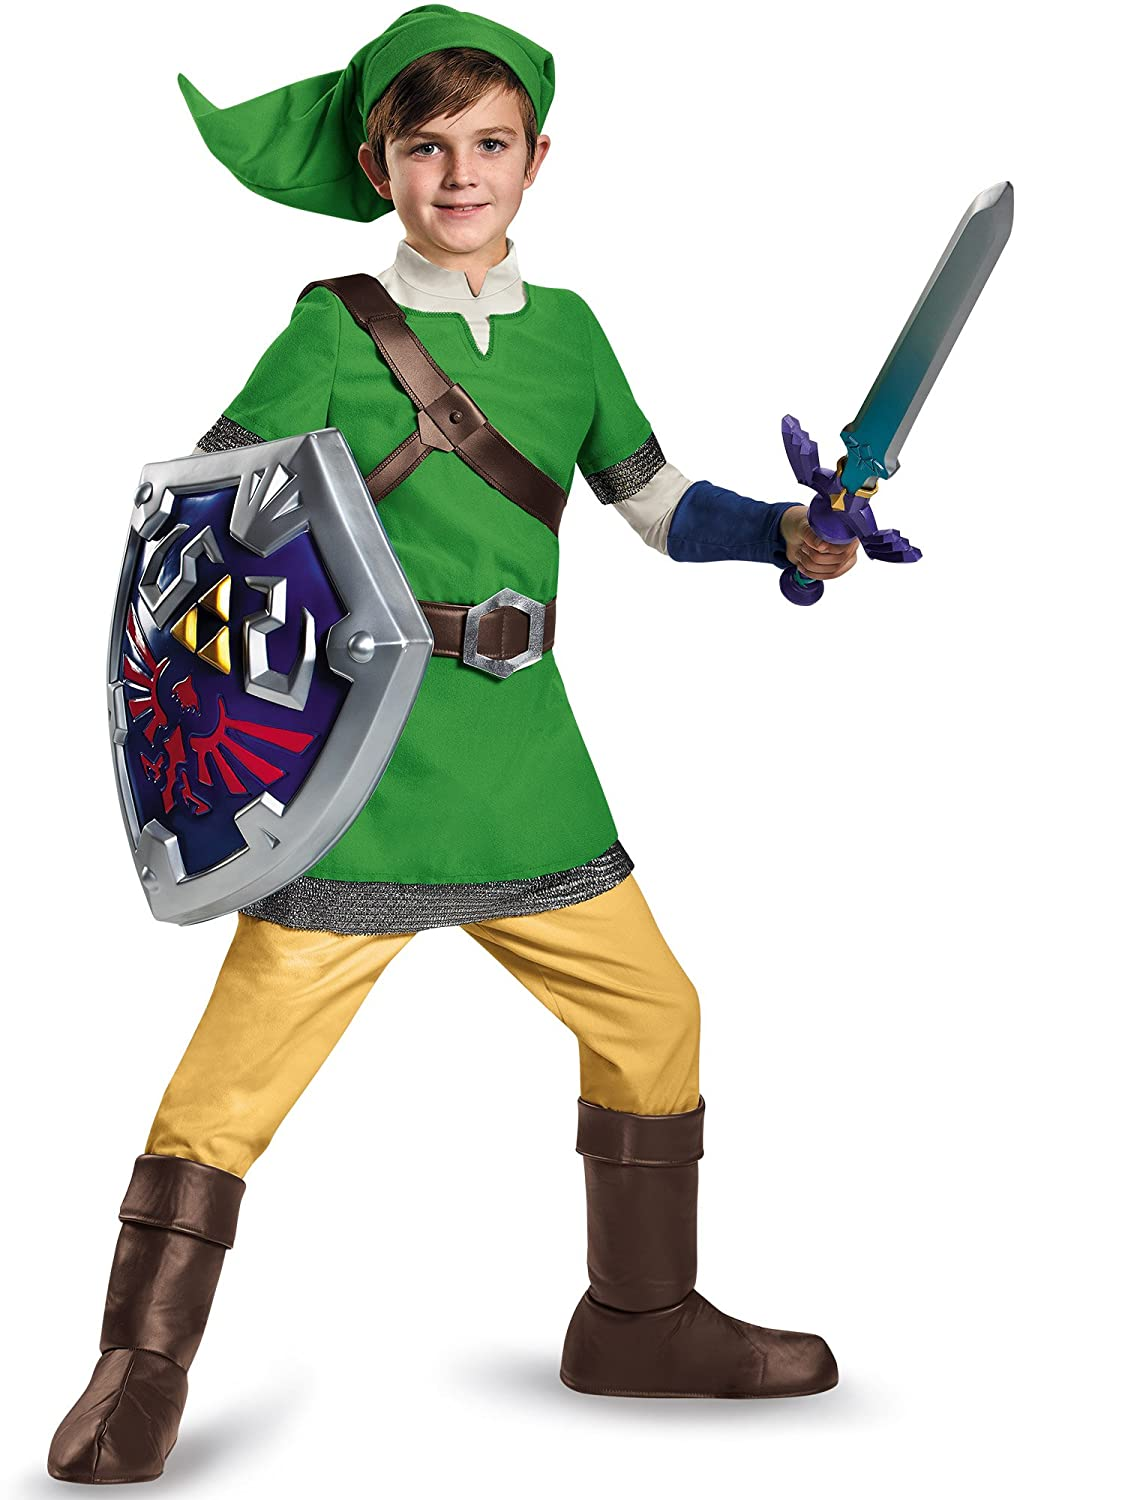 Amazon.com Disguise Link Deluxe Child Costume Large (10-12) Disguise Toys u0026 Games  sc 1 st  Amazon.com & Amazon.com: Disguise Link Deluxe Child Costume Large (10-12 ...